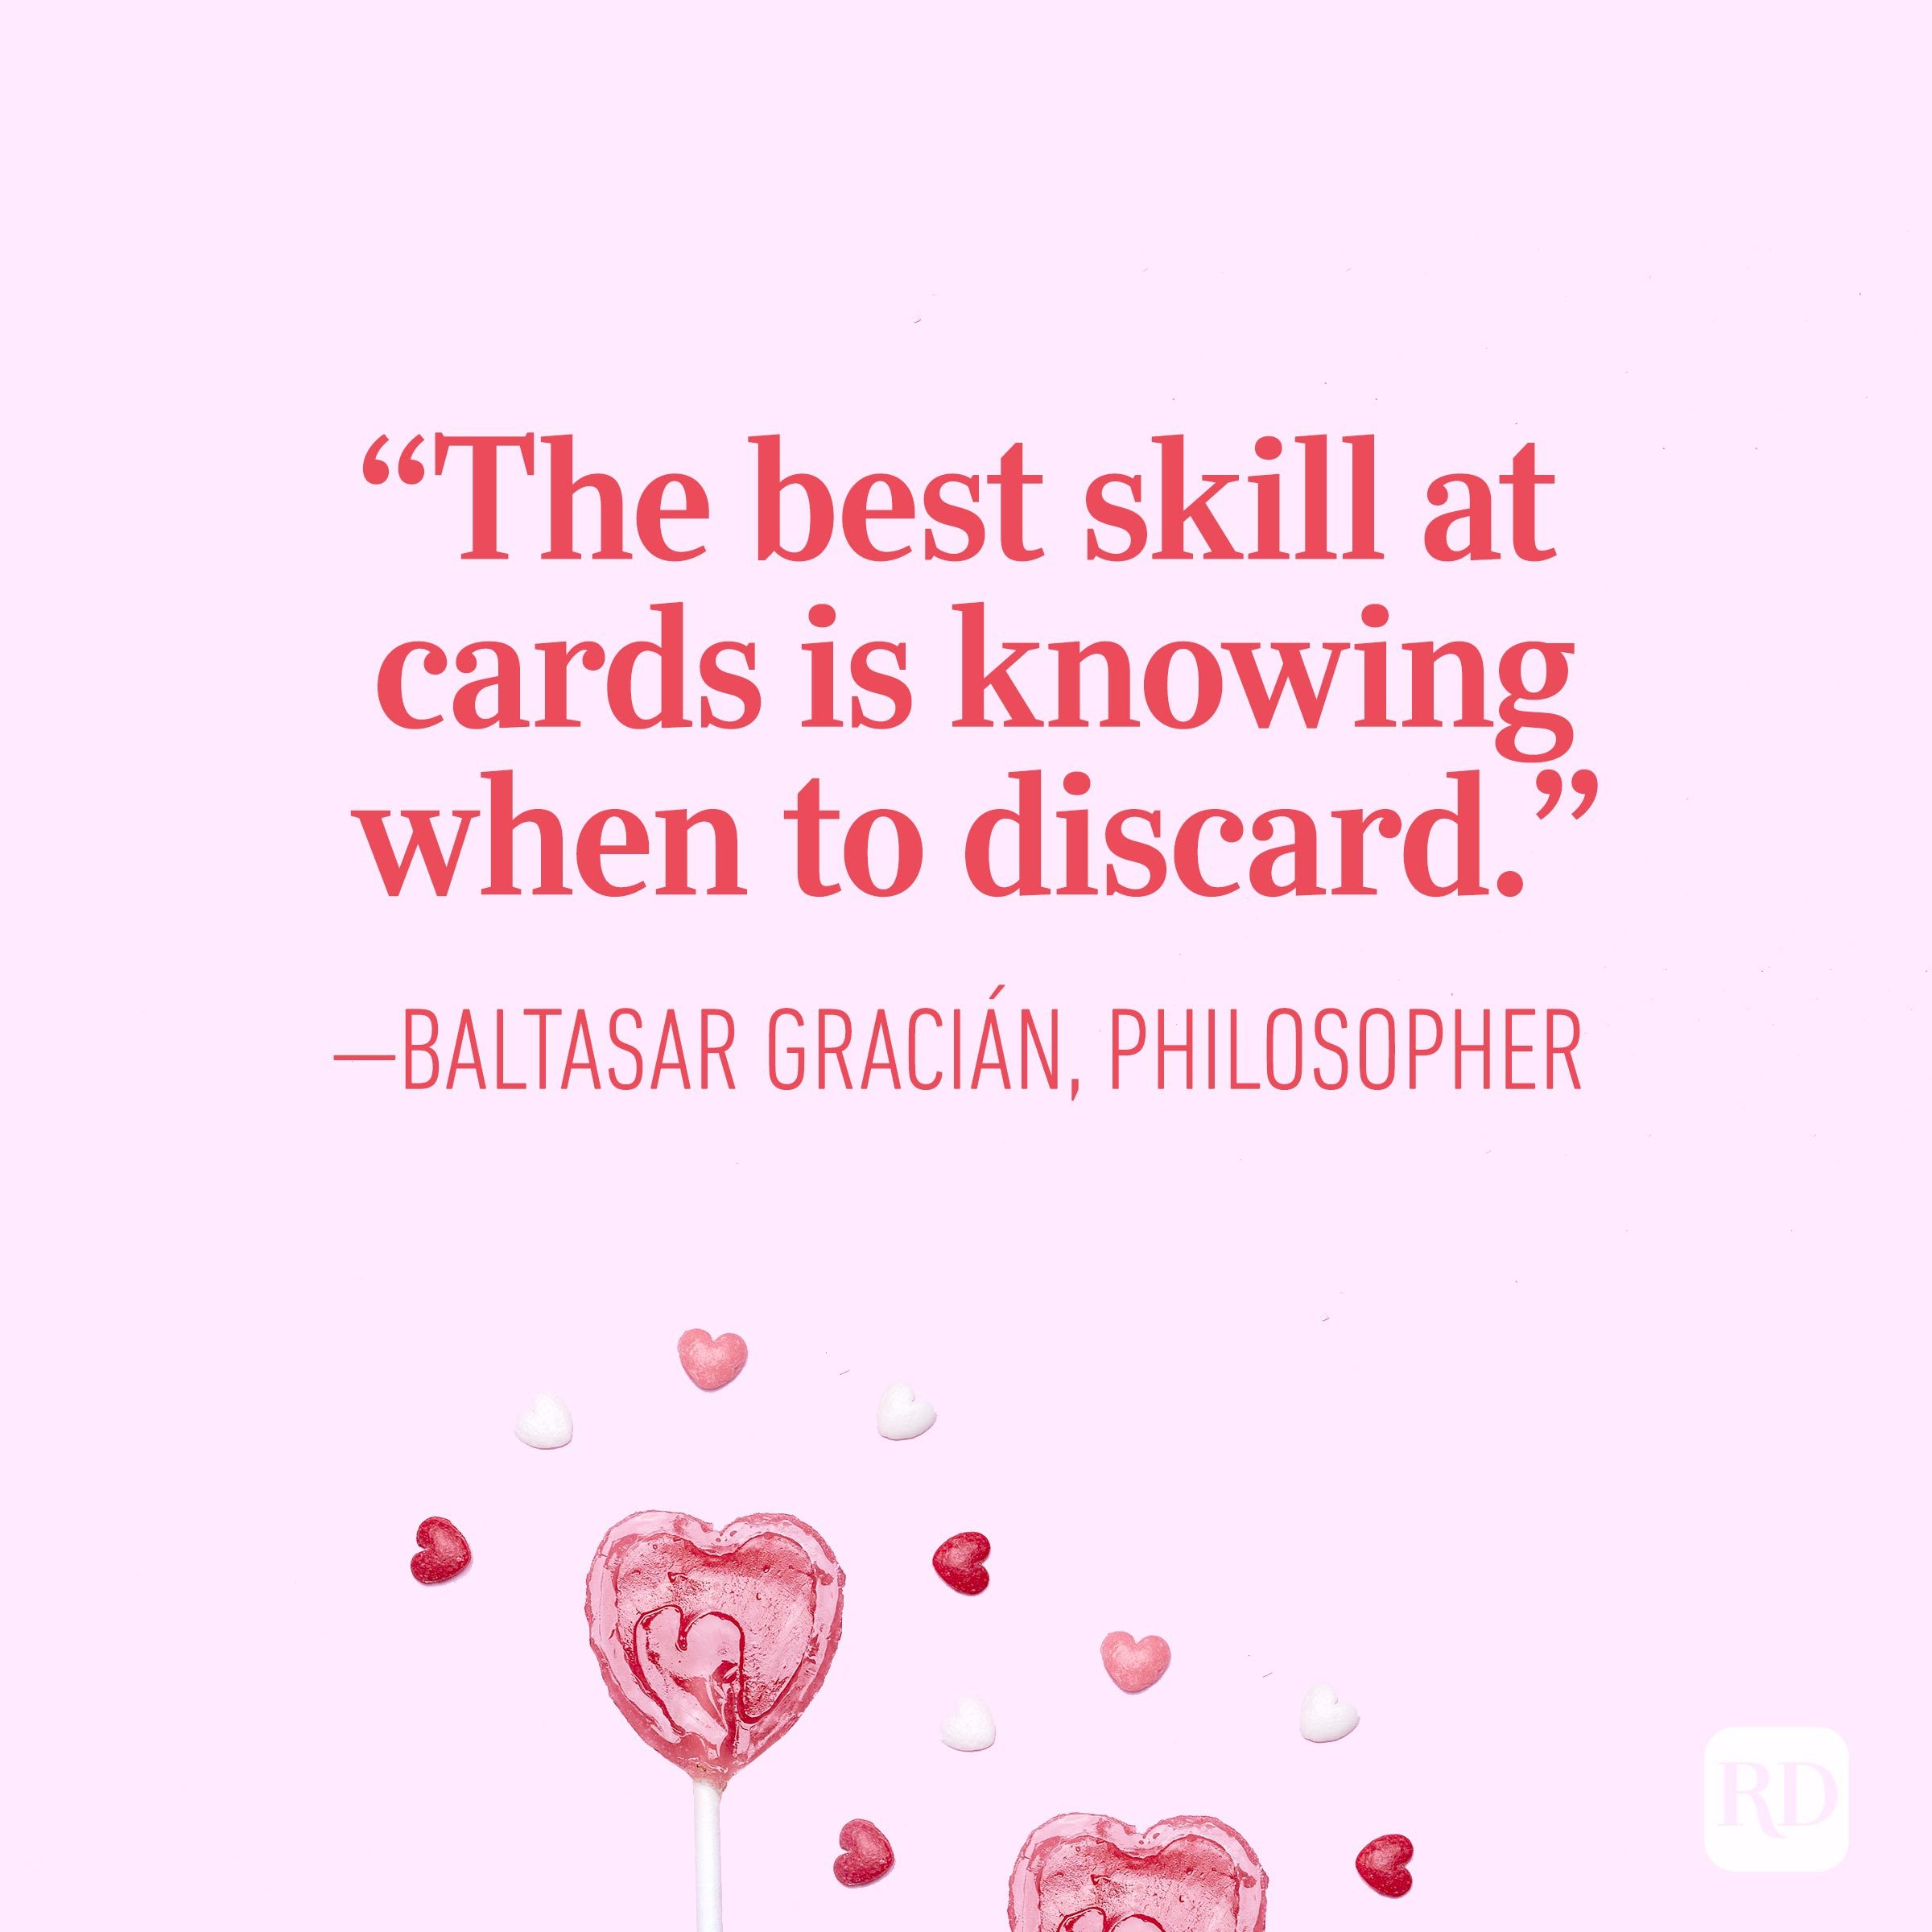 """The best skill at cards is knowing when to discard."" — Baltasar Gracián, philosopher"